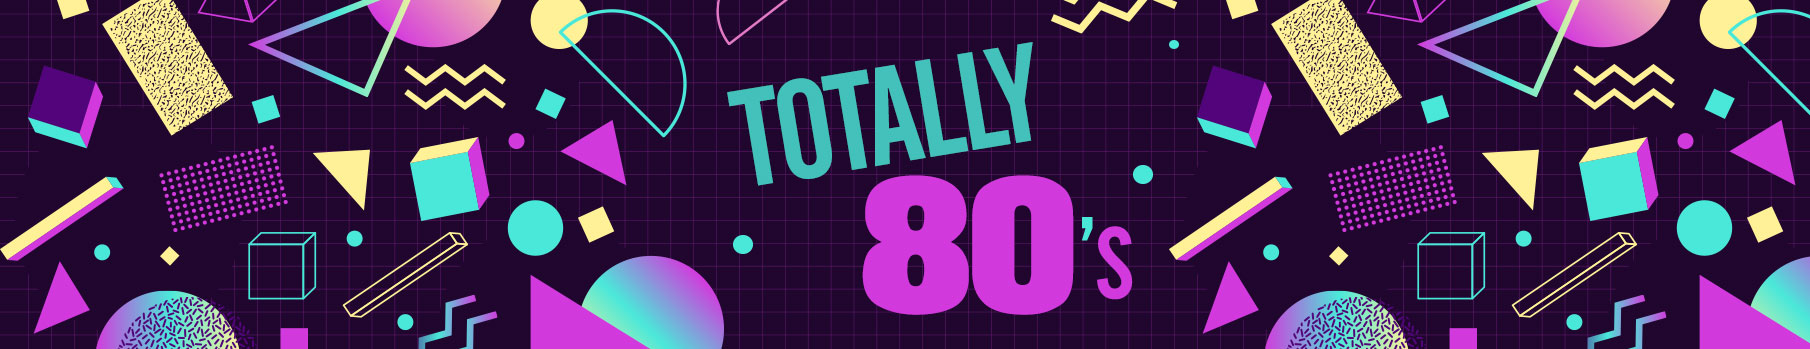 totally80s-subhdr-1220